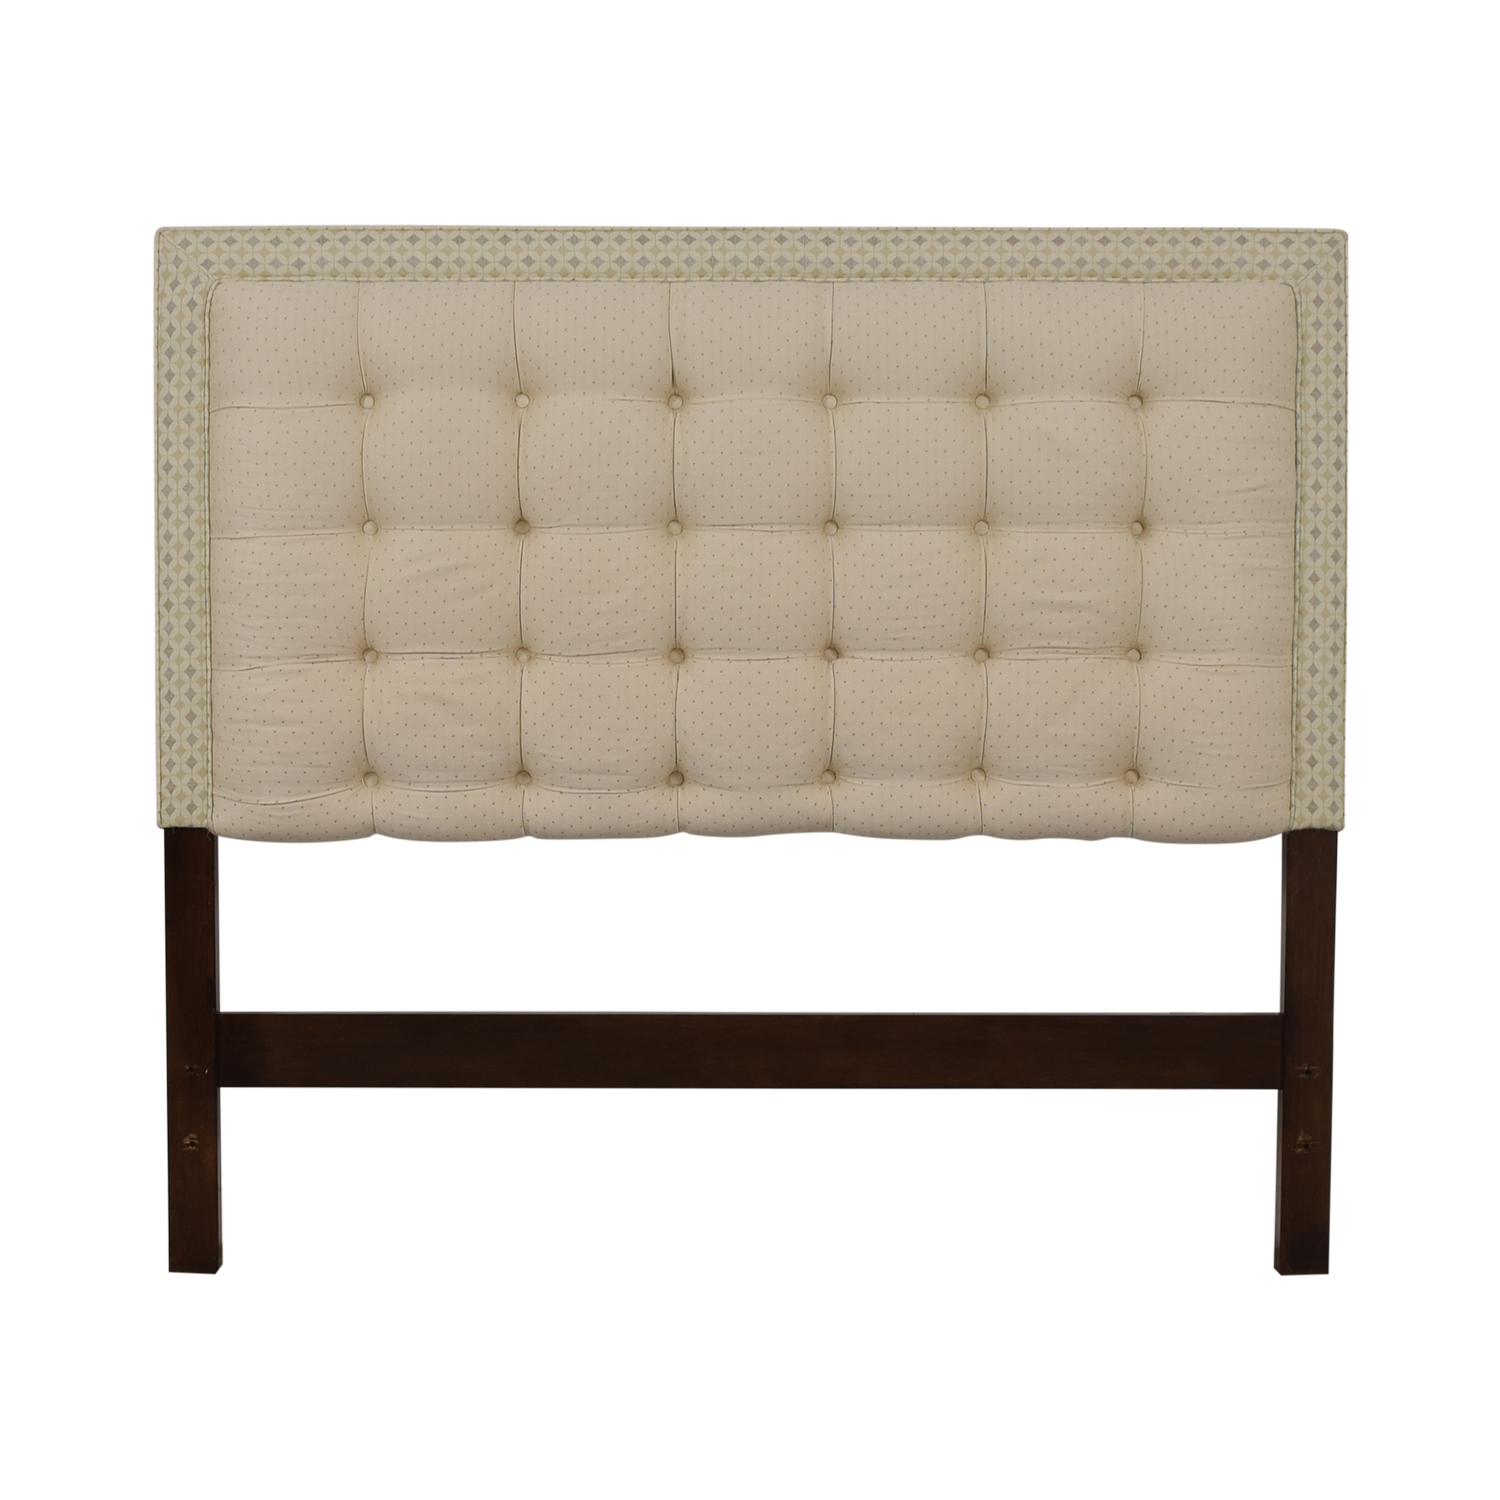 Custom Creme Tufted Queen Headboard price